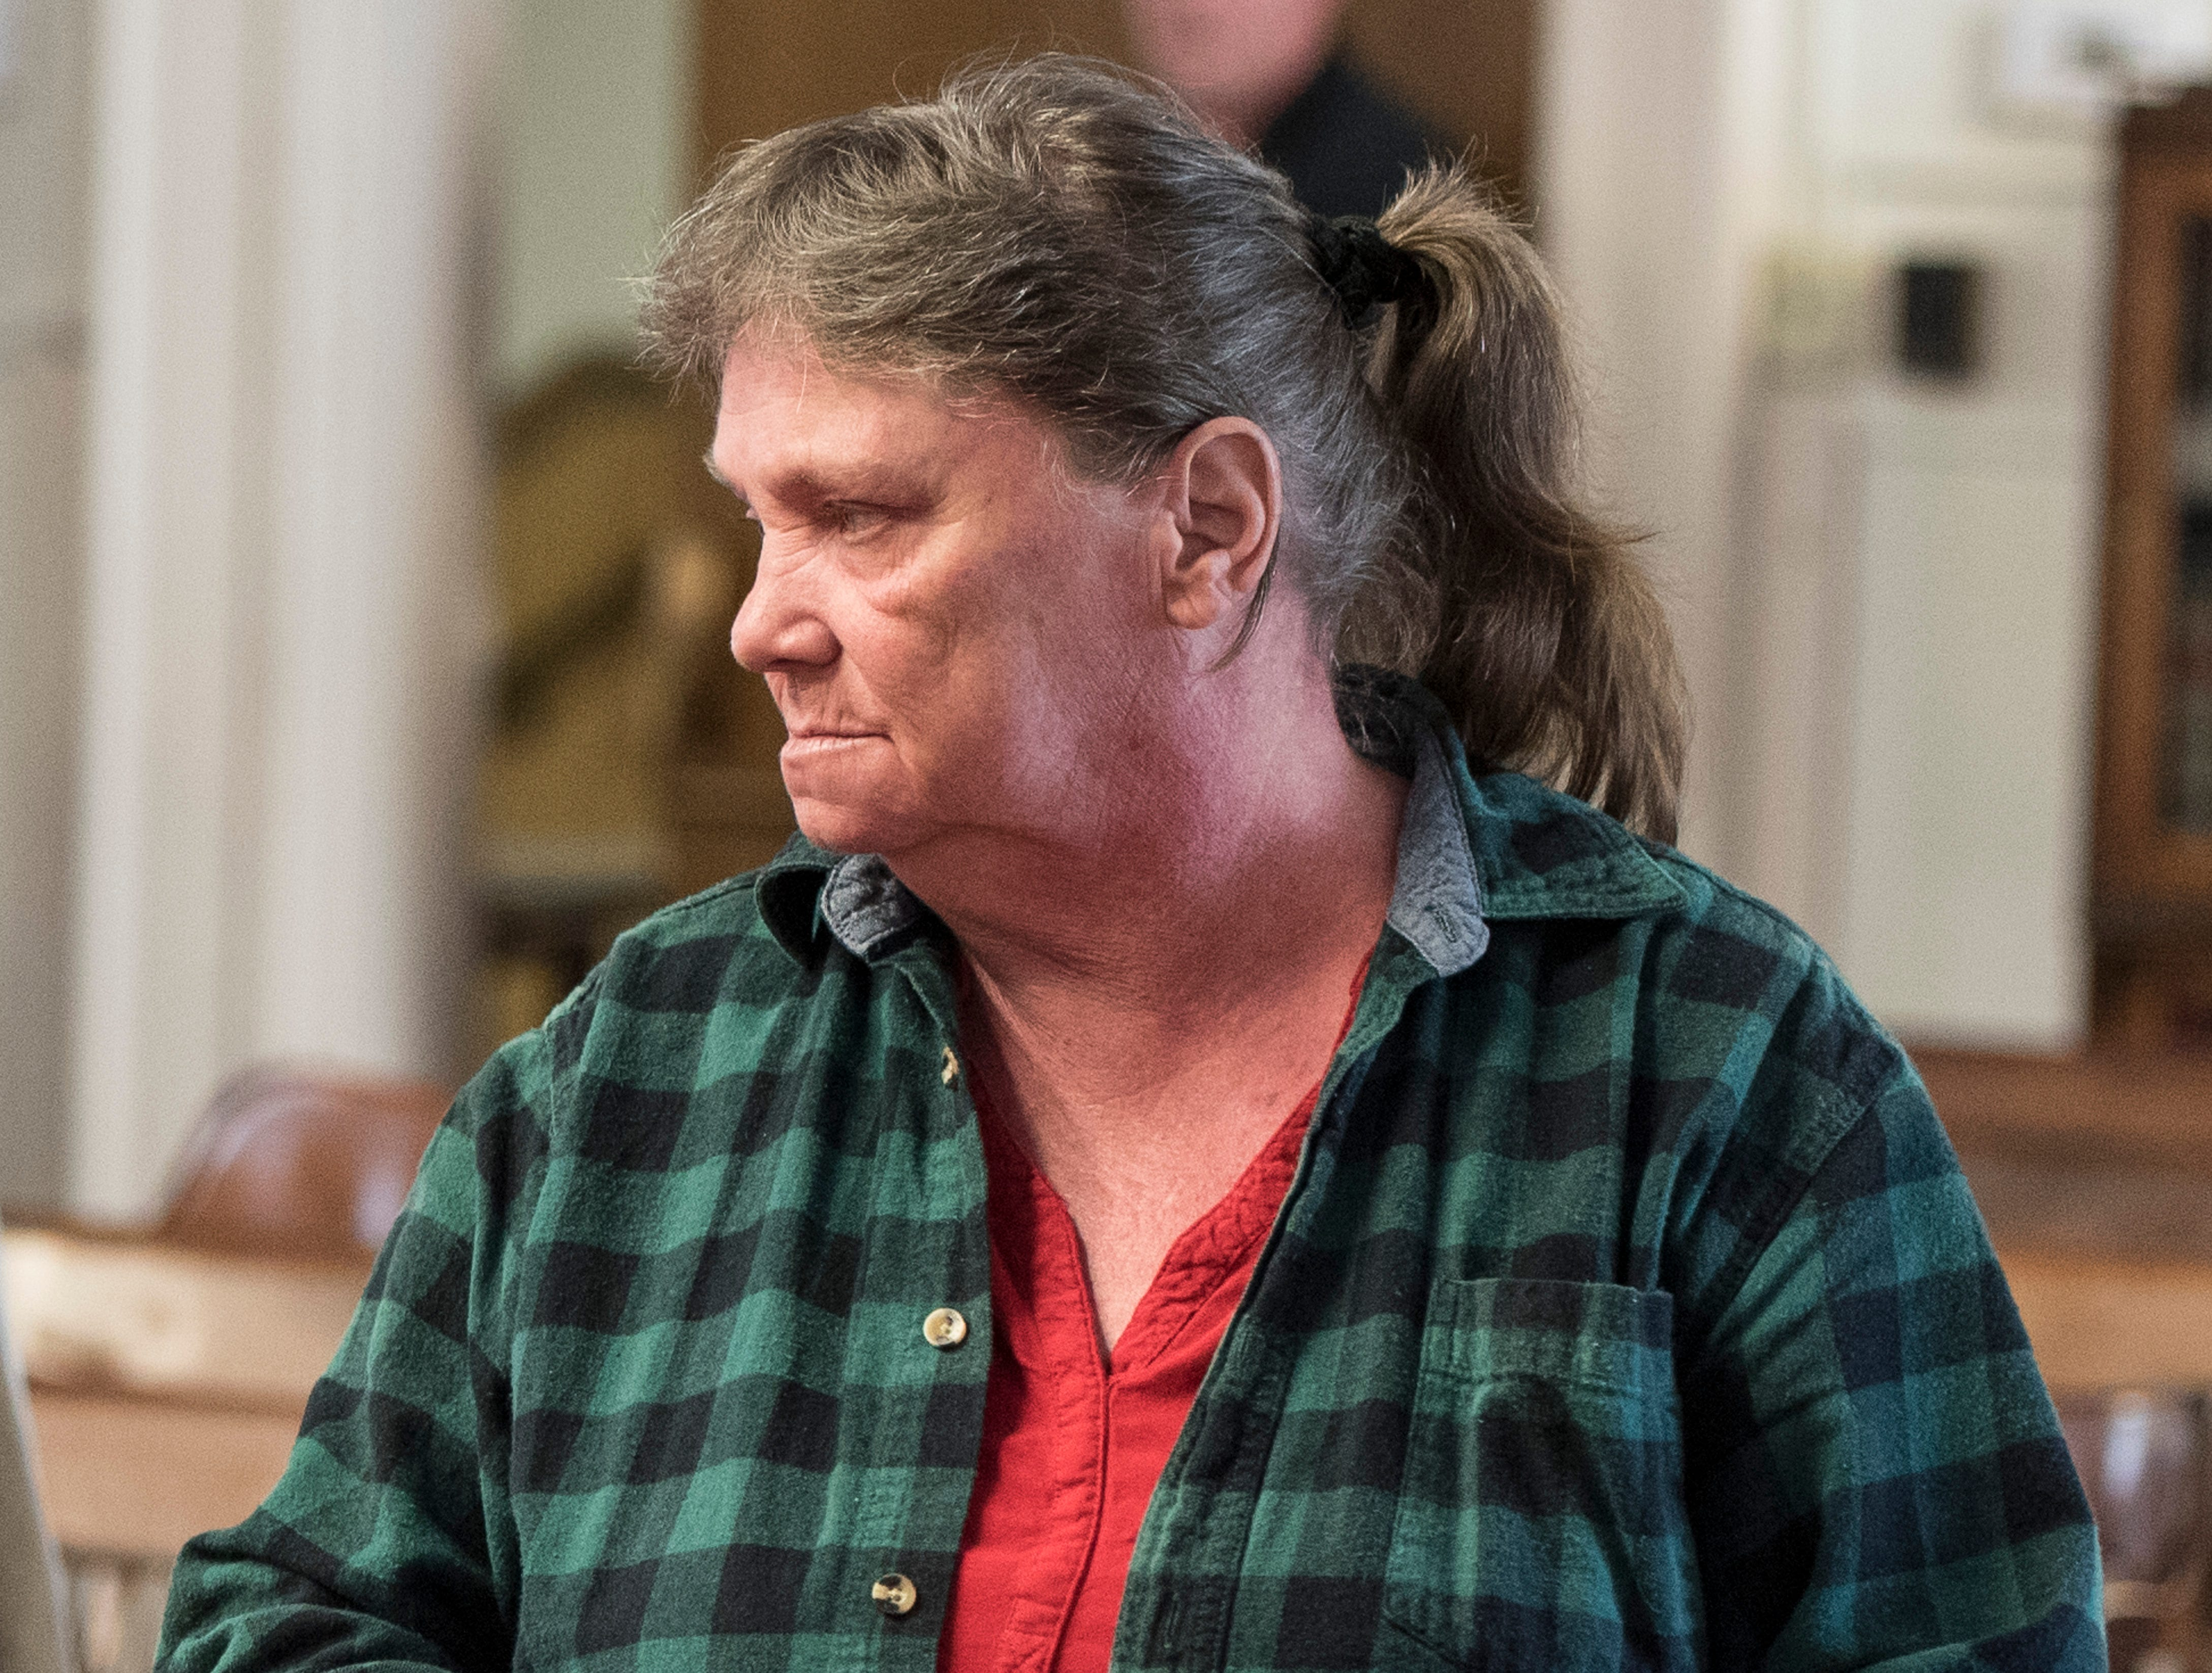 Rita Newcomb enters the courtroom to learn about her trial dates at the Pike County Courthouse on March 28, 2019. Newcomb, 65, of South Webster, is accused of perjury and obstructing justice for allegedly misleading investigators concerning the deaths of the eight members of the Rhoden family in 2016 and is also charged with forging custody documents to cover up the crimes.